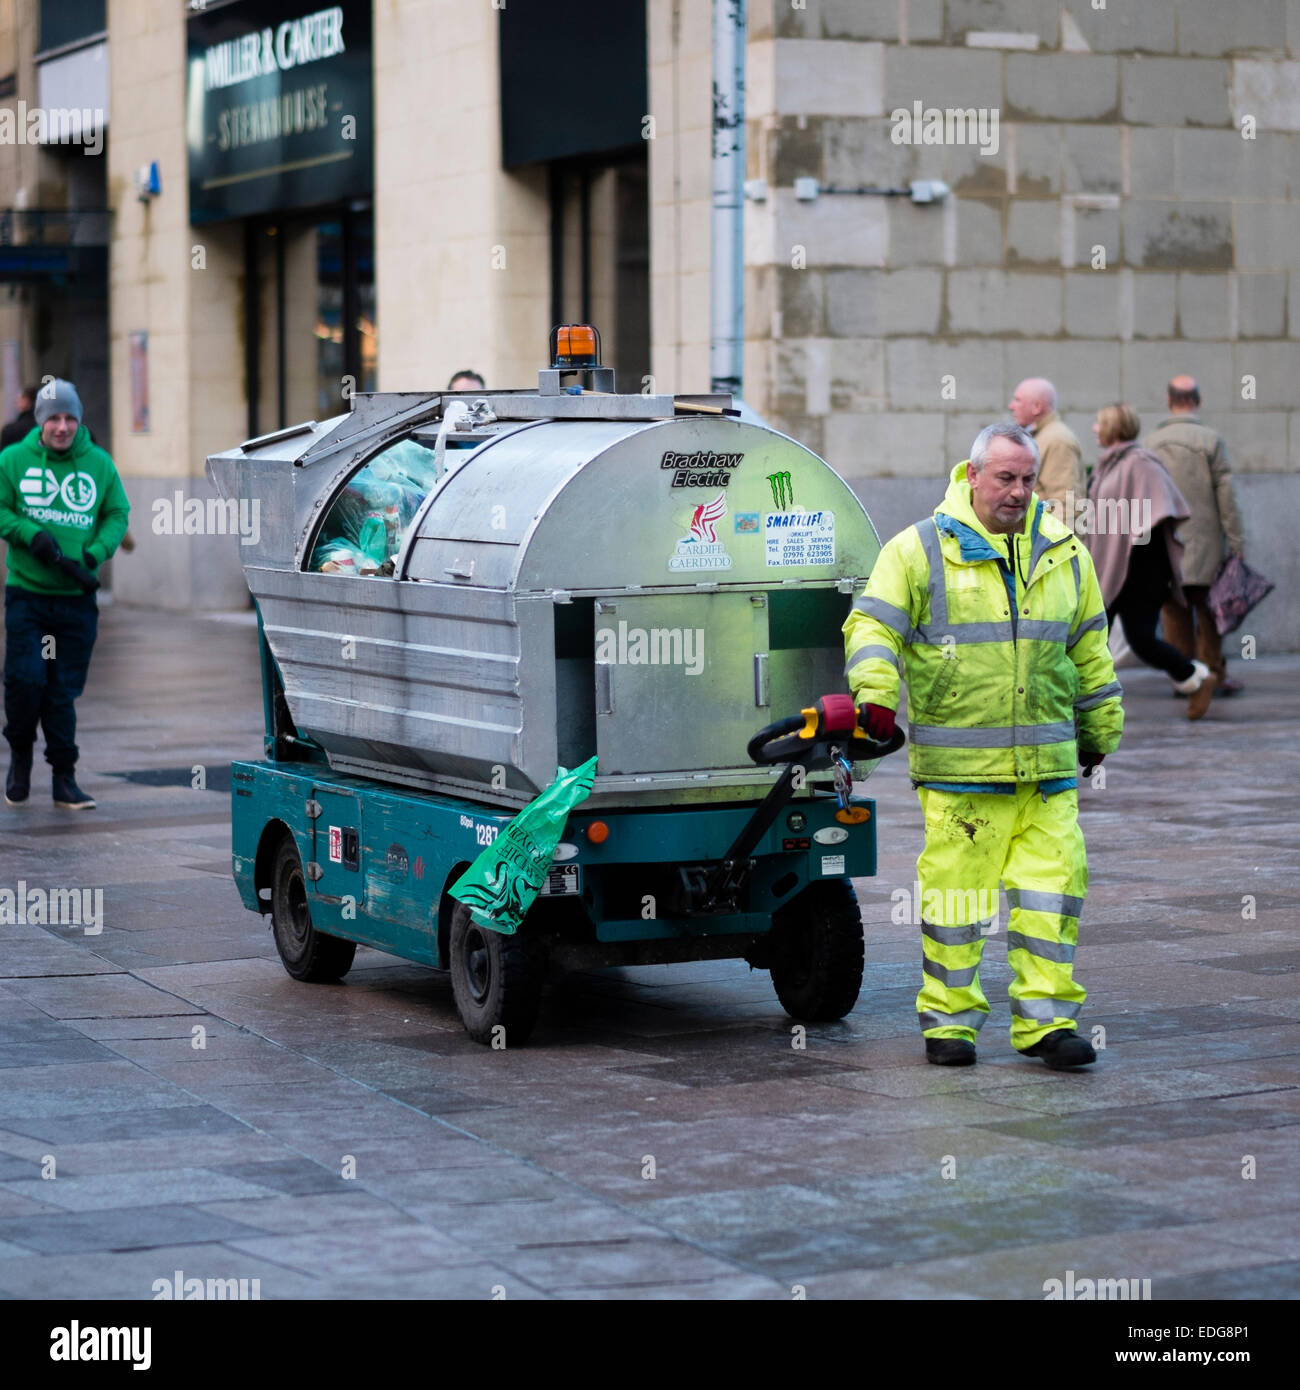 A street cleaner working pulling an electric rubbish cart trolley in Cardiff city centre, the Capital of Wales UK Stock Photo